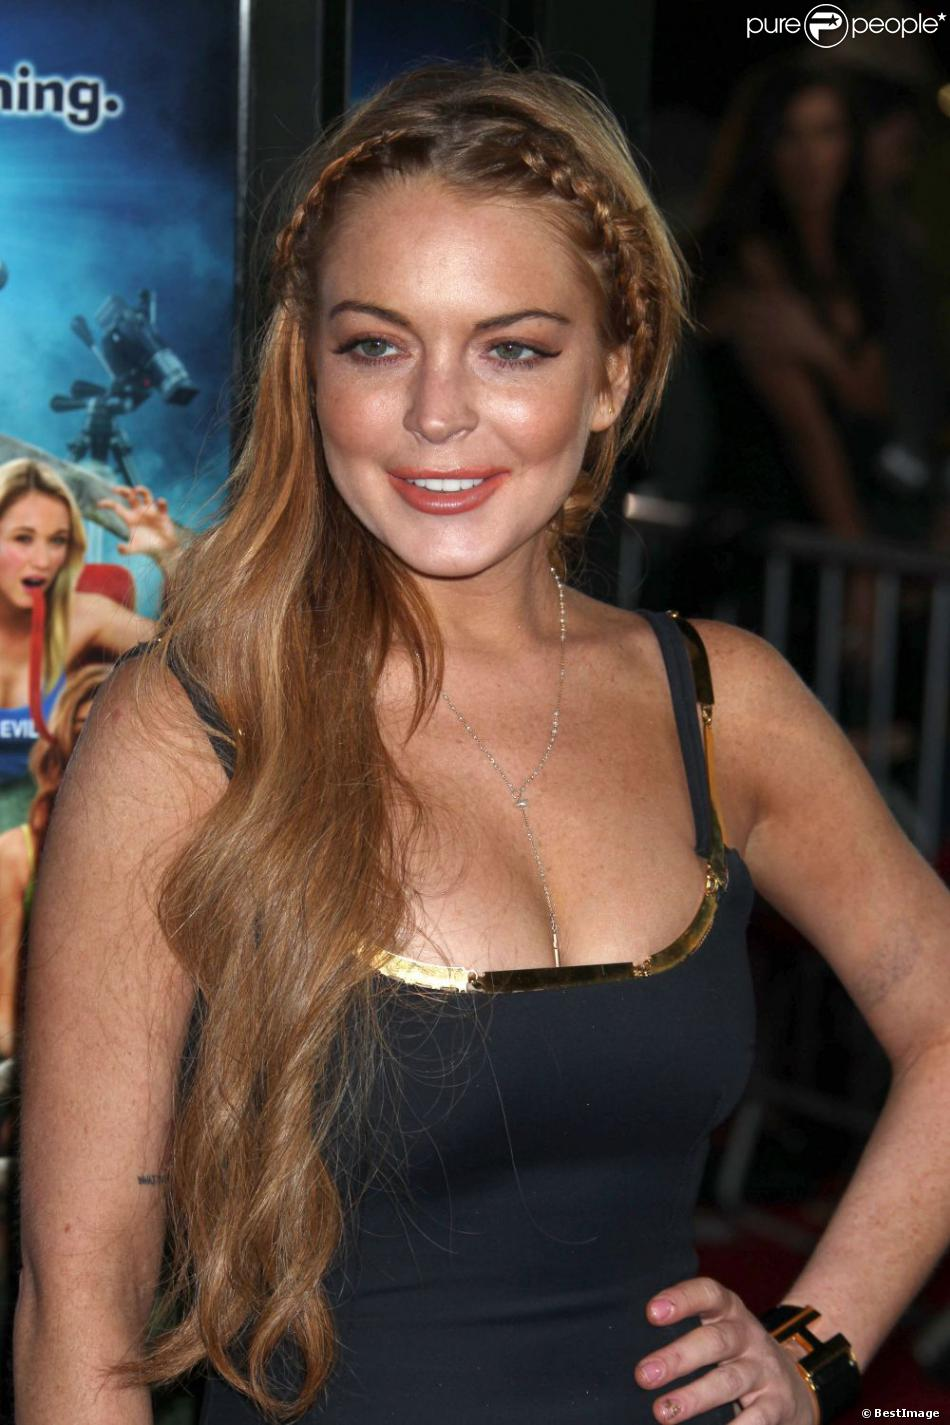 Lindsay Lohan lors de la première du film Scary Movie 5 au cinema Arclight à Hollywood. Le 11 avril 2013.